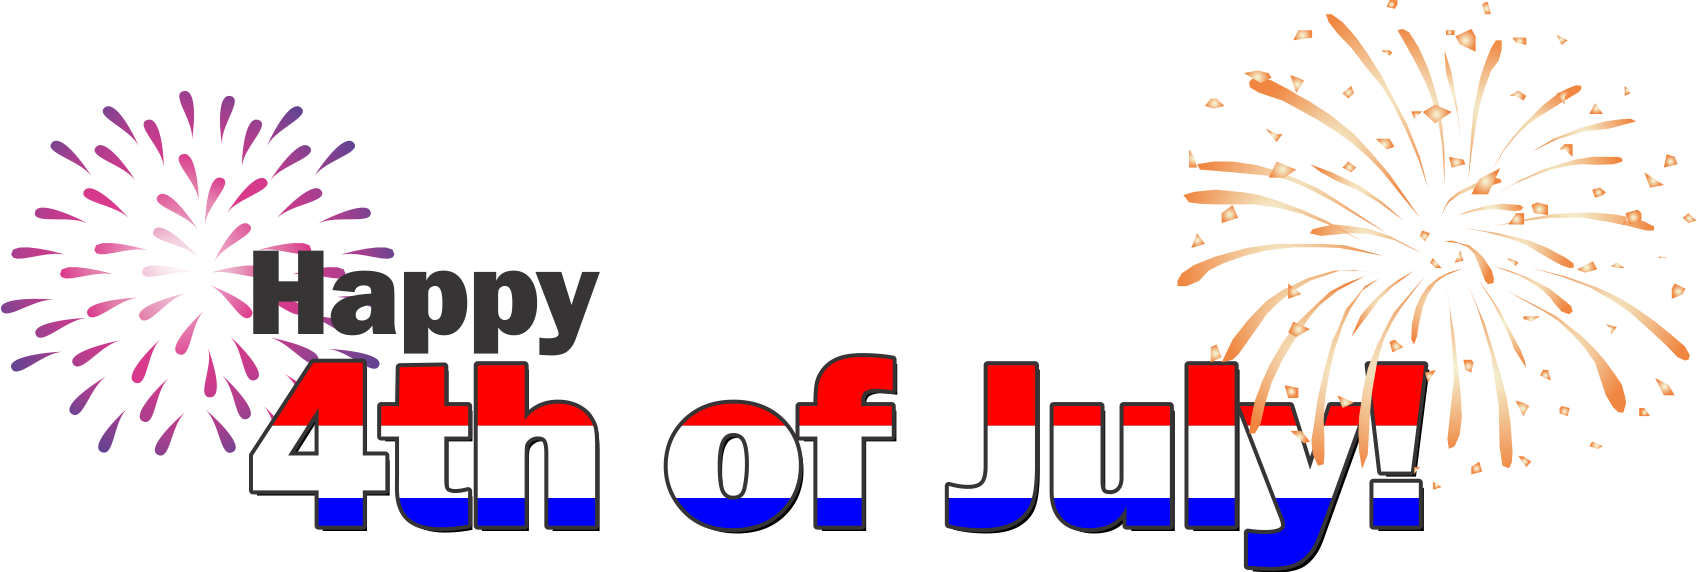 Fourth of july banner png. Happy th